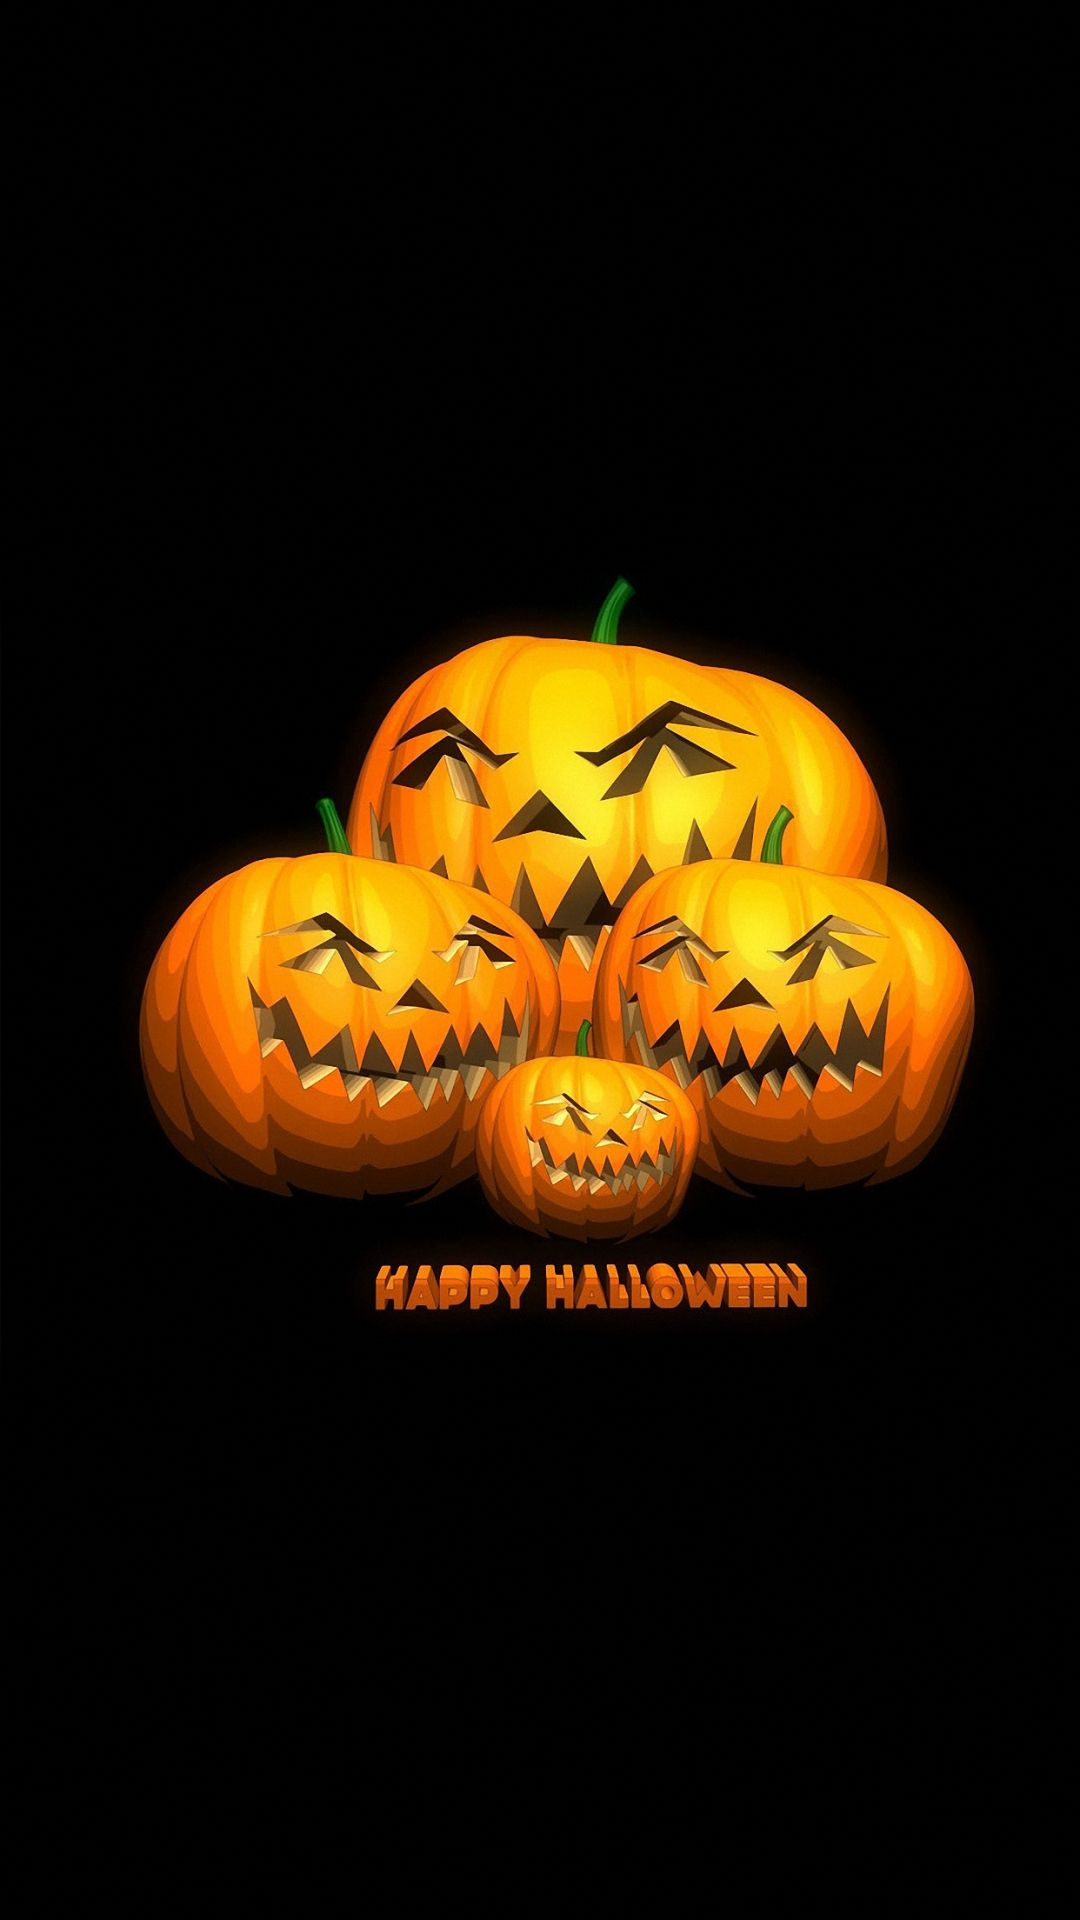 Hd Happy Halloween Wallpapers Holiday Mobile Iphone 6s